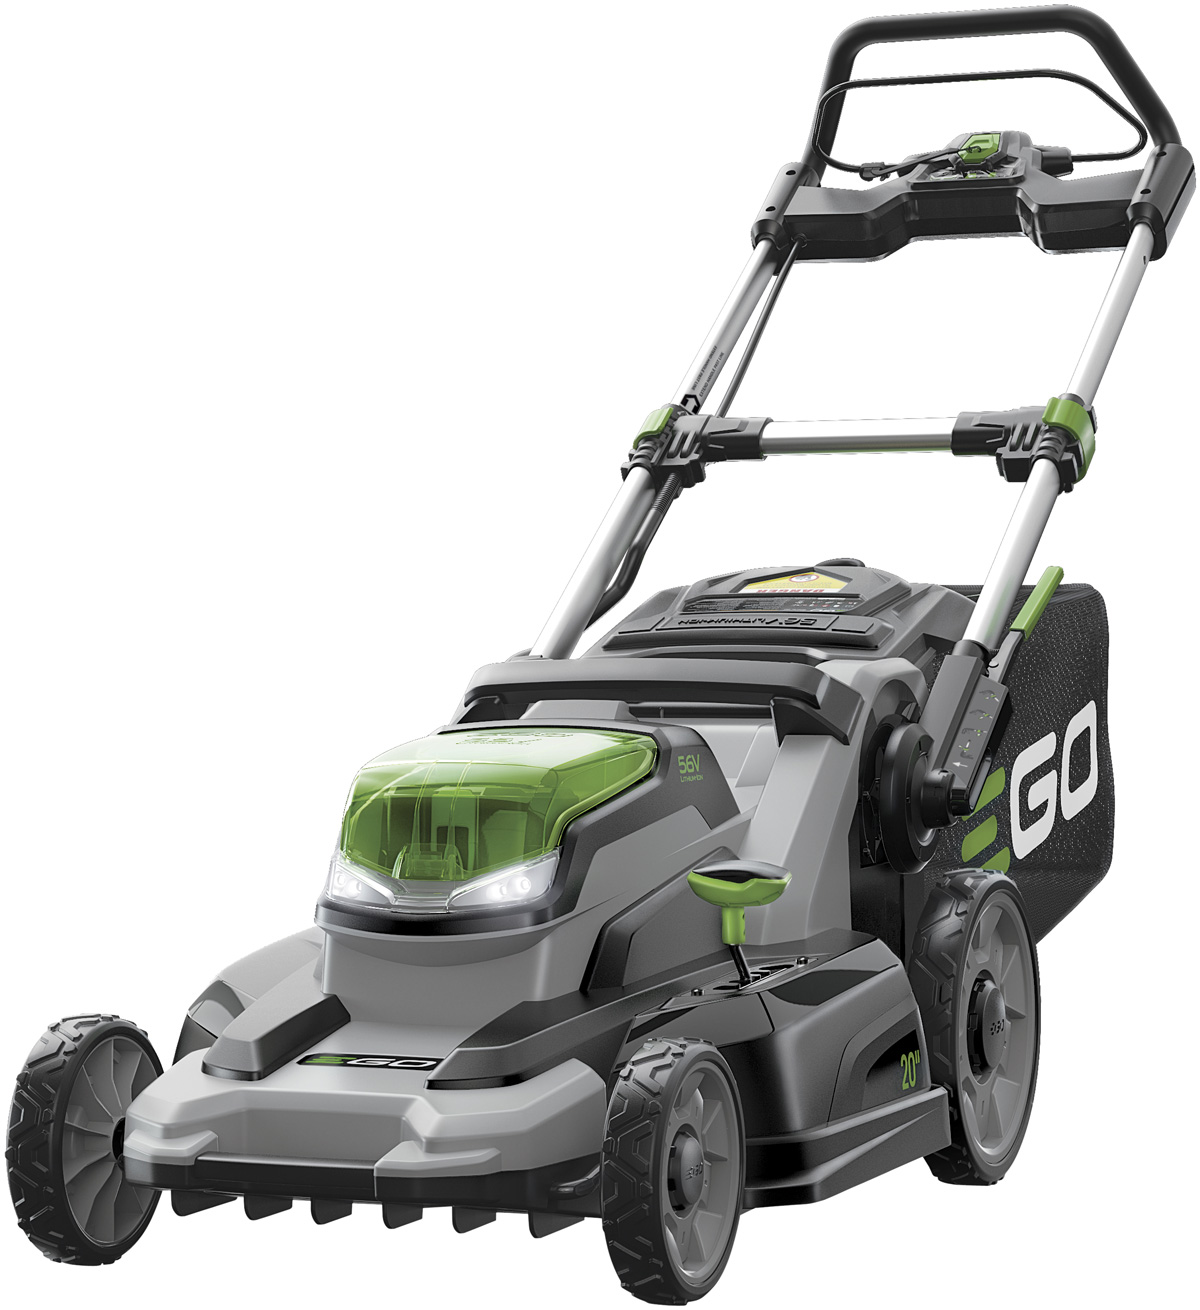 EGO_56V_LM2000_20in_Mower_2_WEB.jpg